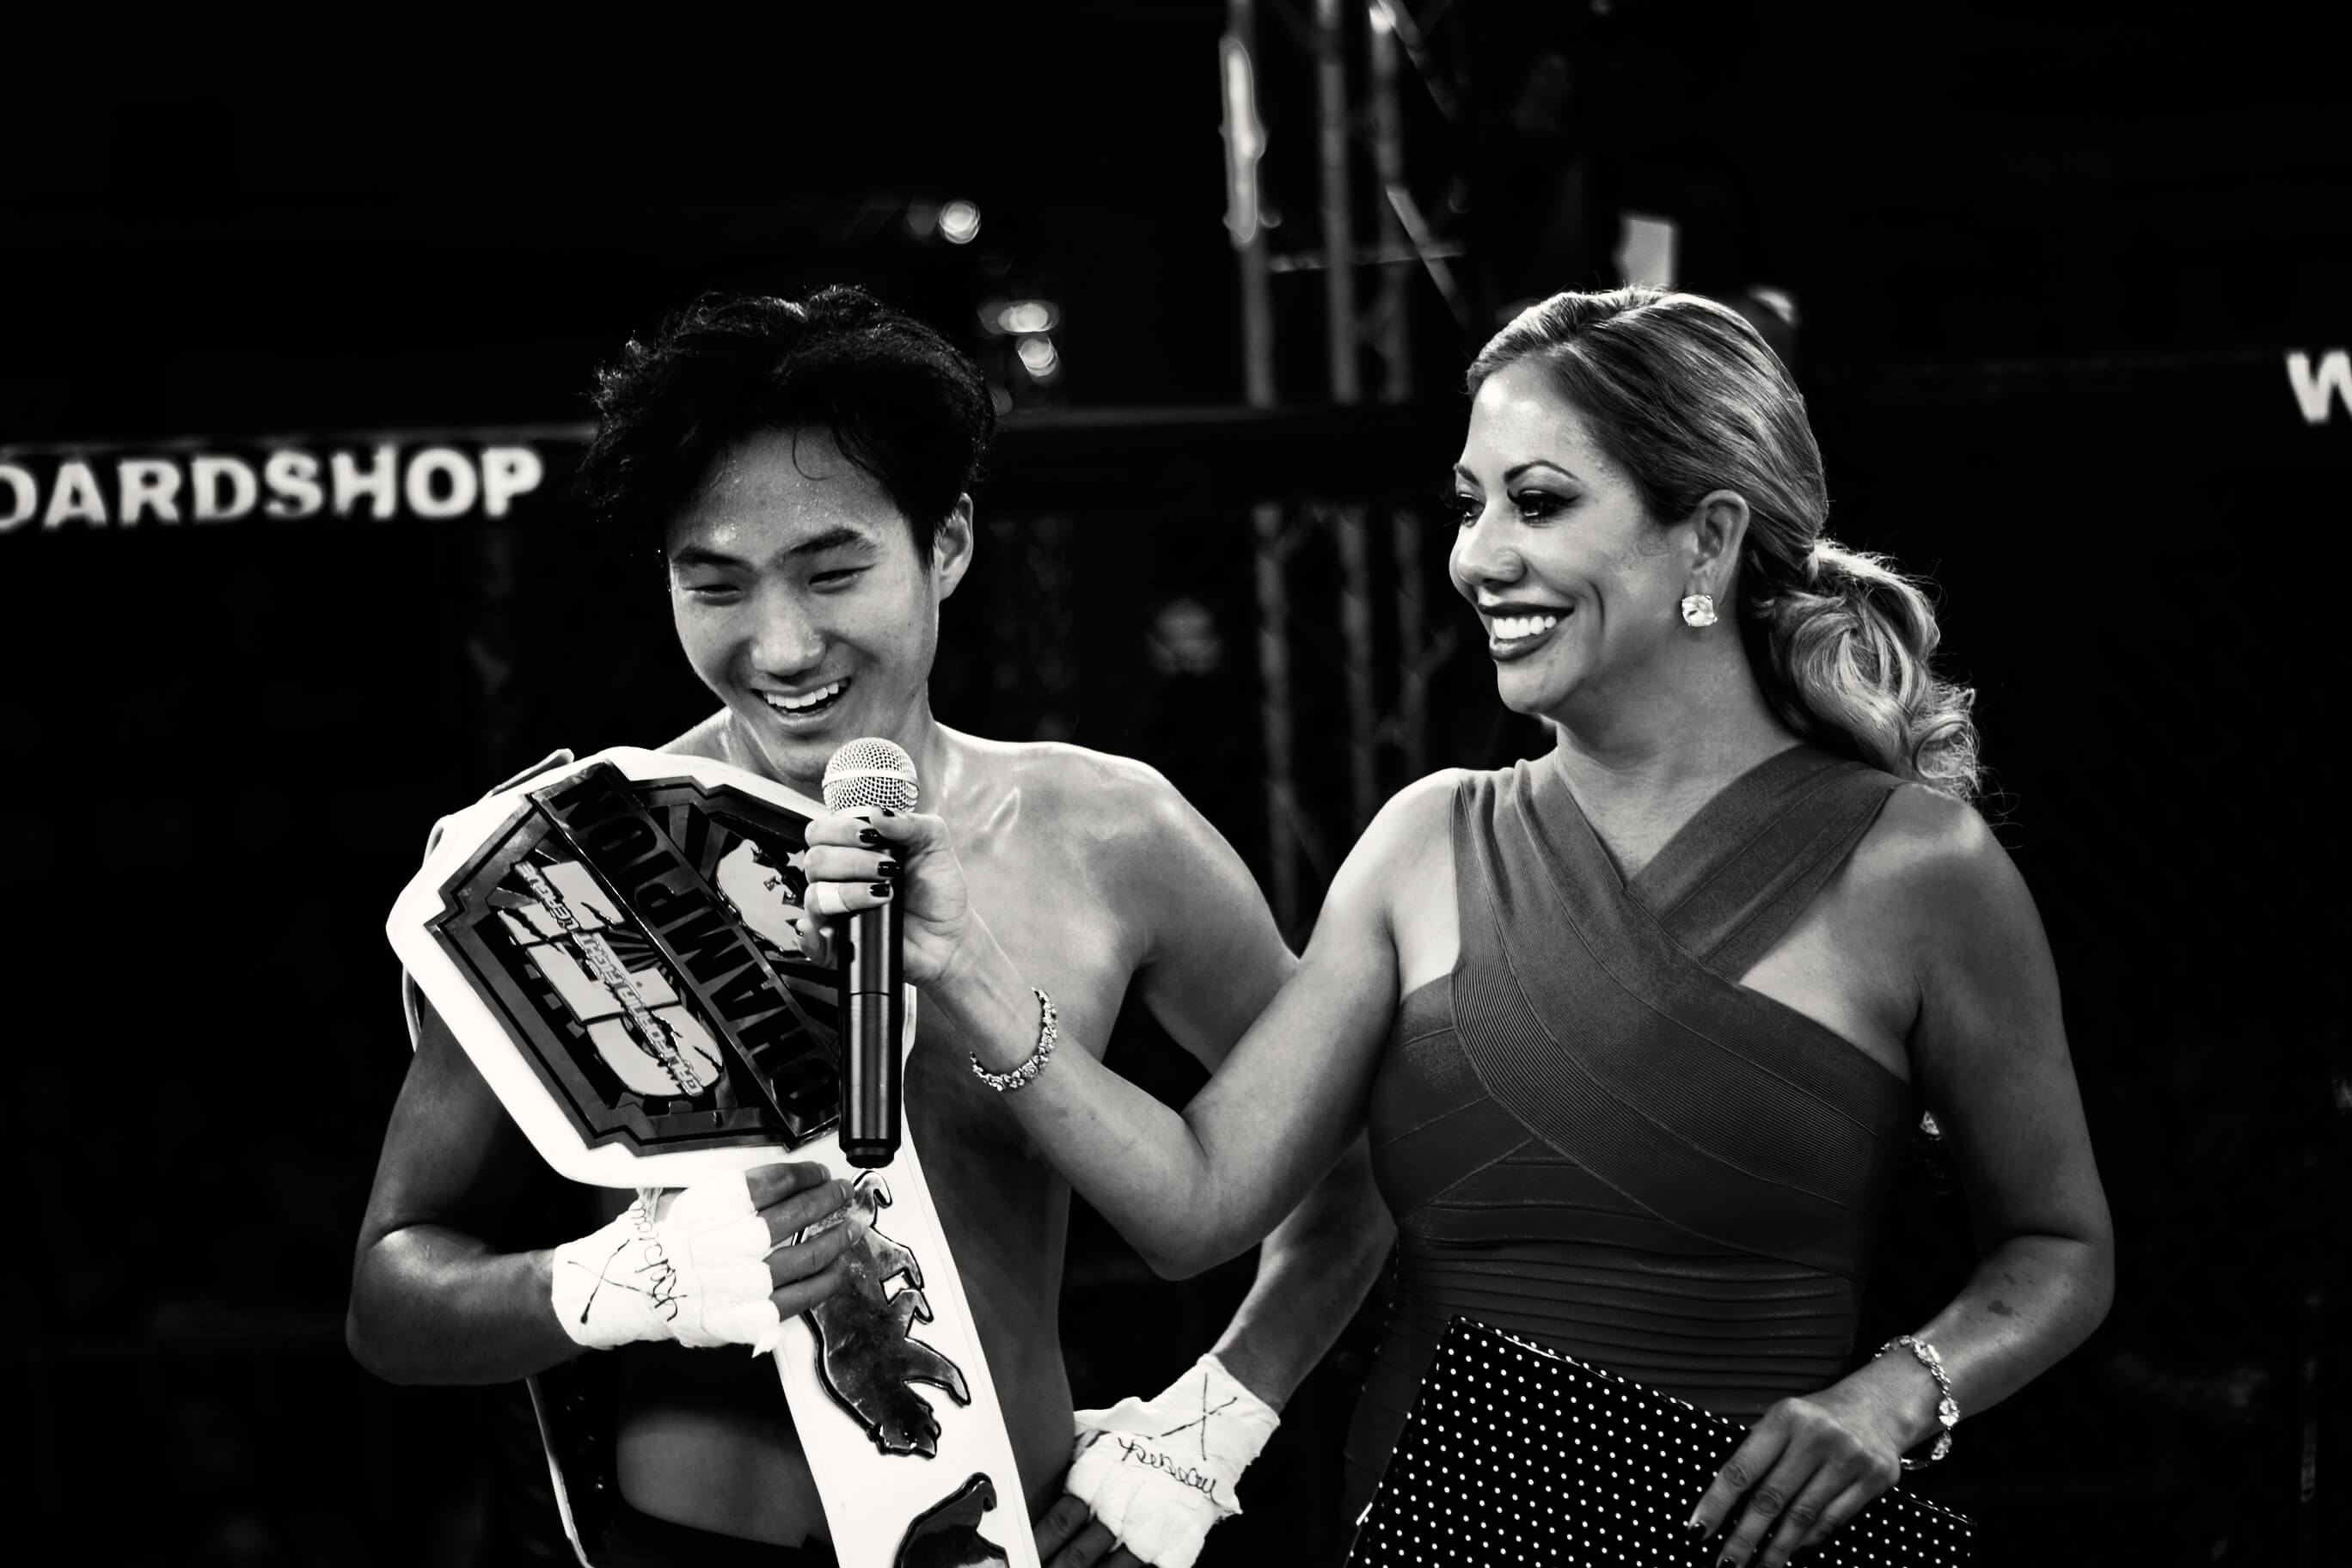 John Kim winning the championship belt at CFL VIII